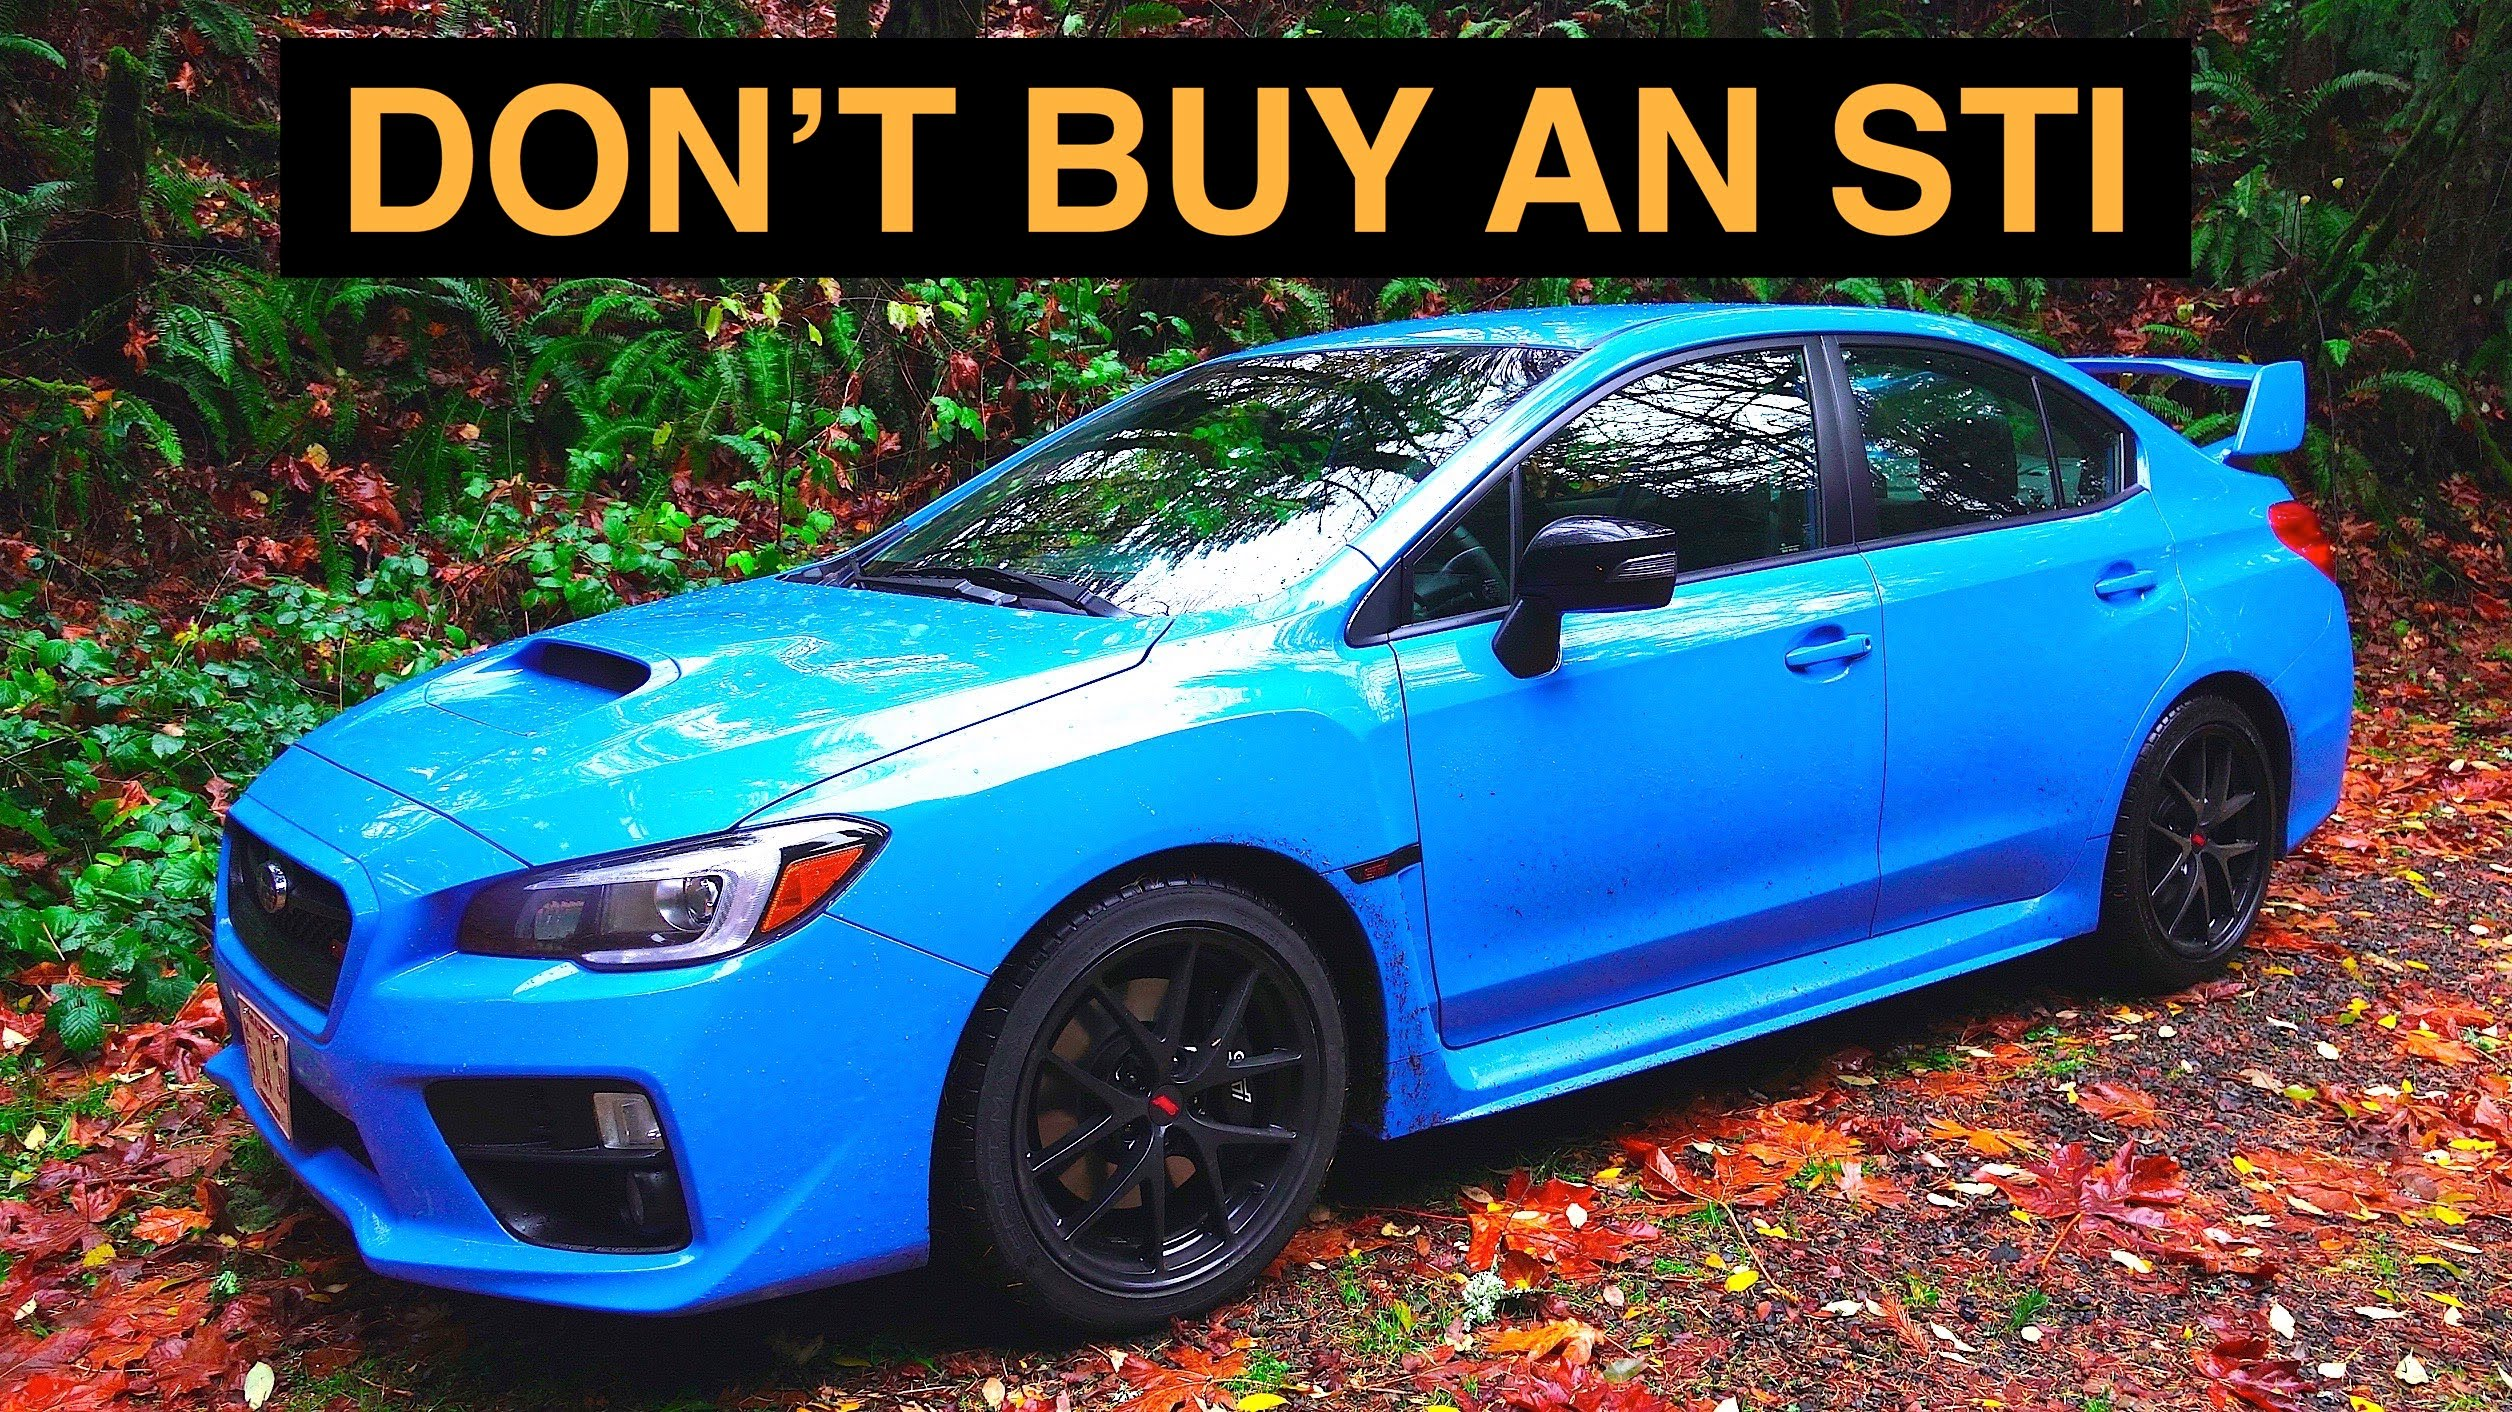 youtuber gives 7 reasons not to buy a 2016 subaru wrx sti